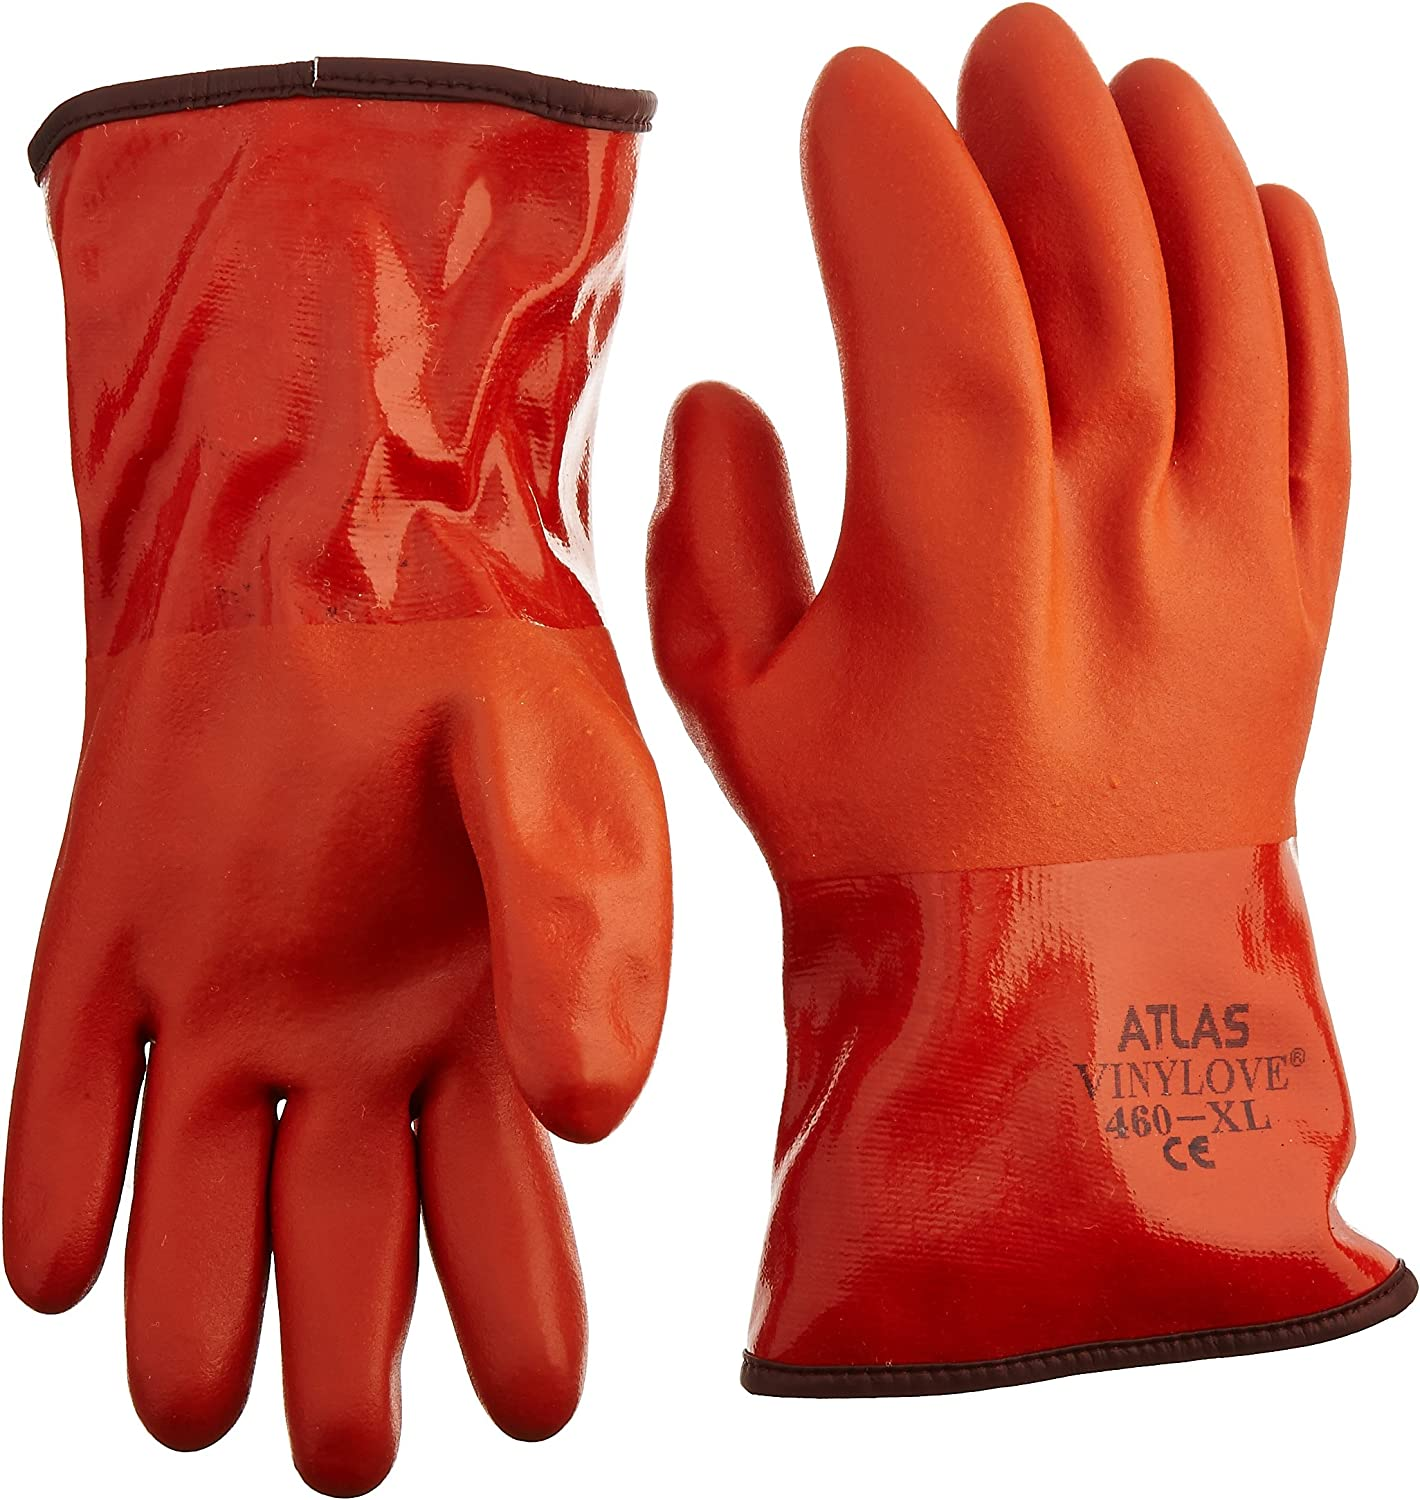 Showa Atlas 460 Nashville-Davidson Mall Vinylove Cold Gloves Resistant - Large special price Insulated X-Lar